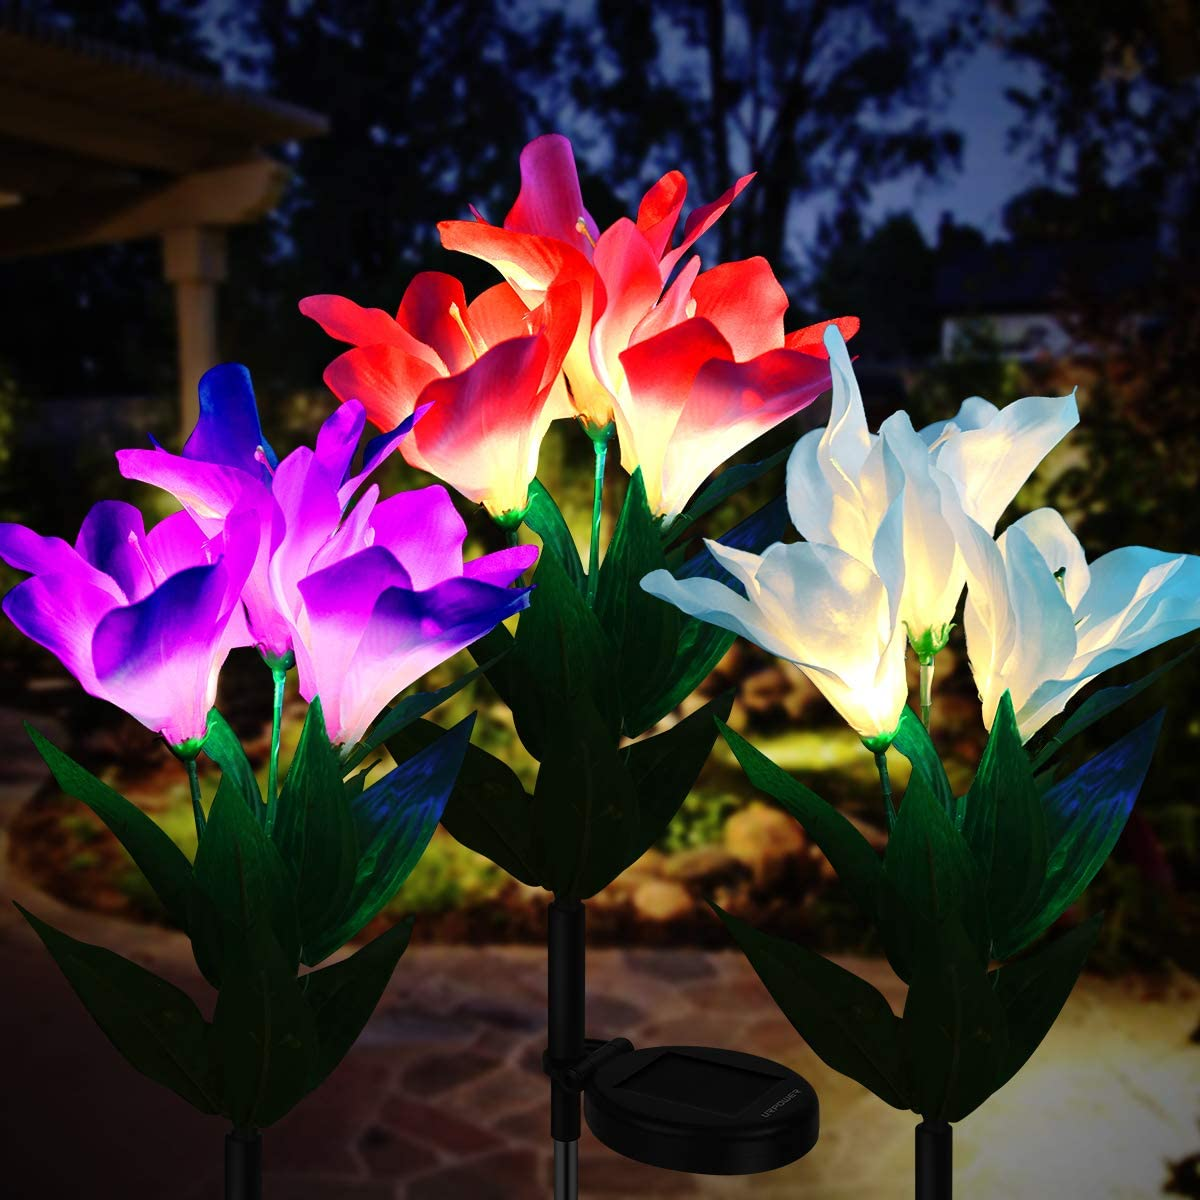 URPOWER Solar Lights IP65 Waterproof Solar Lights Outdoor Multi-Color Changing LED Solar Flower Lights Garden Lights Decorative Yard Lights Path Lights Dusk to Dawn Auto on off for Lawn Patio Backyard